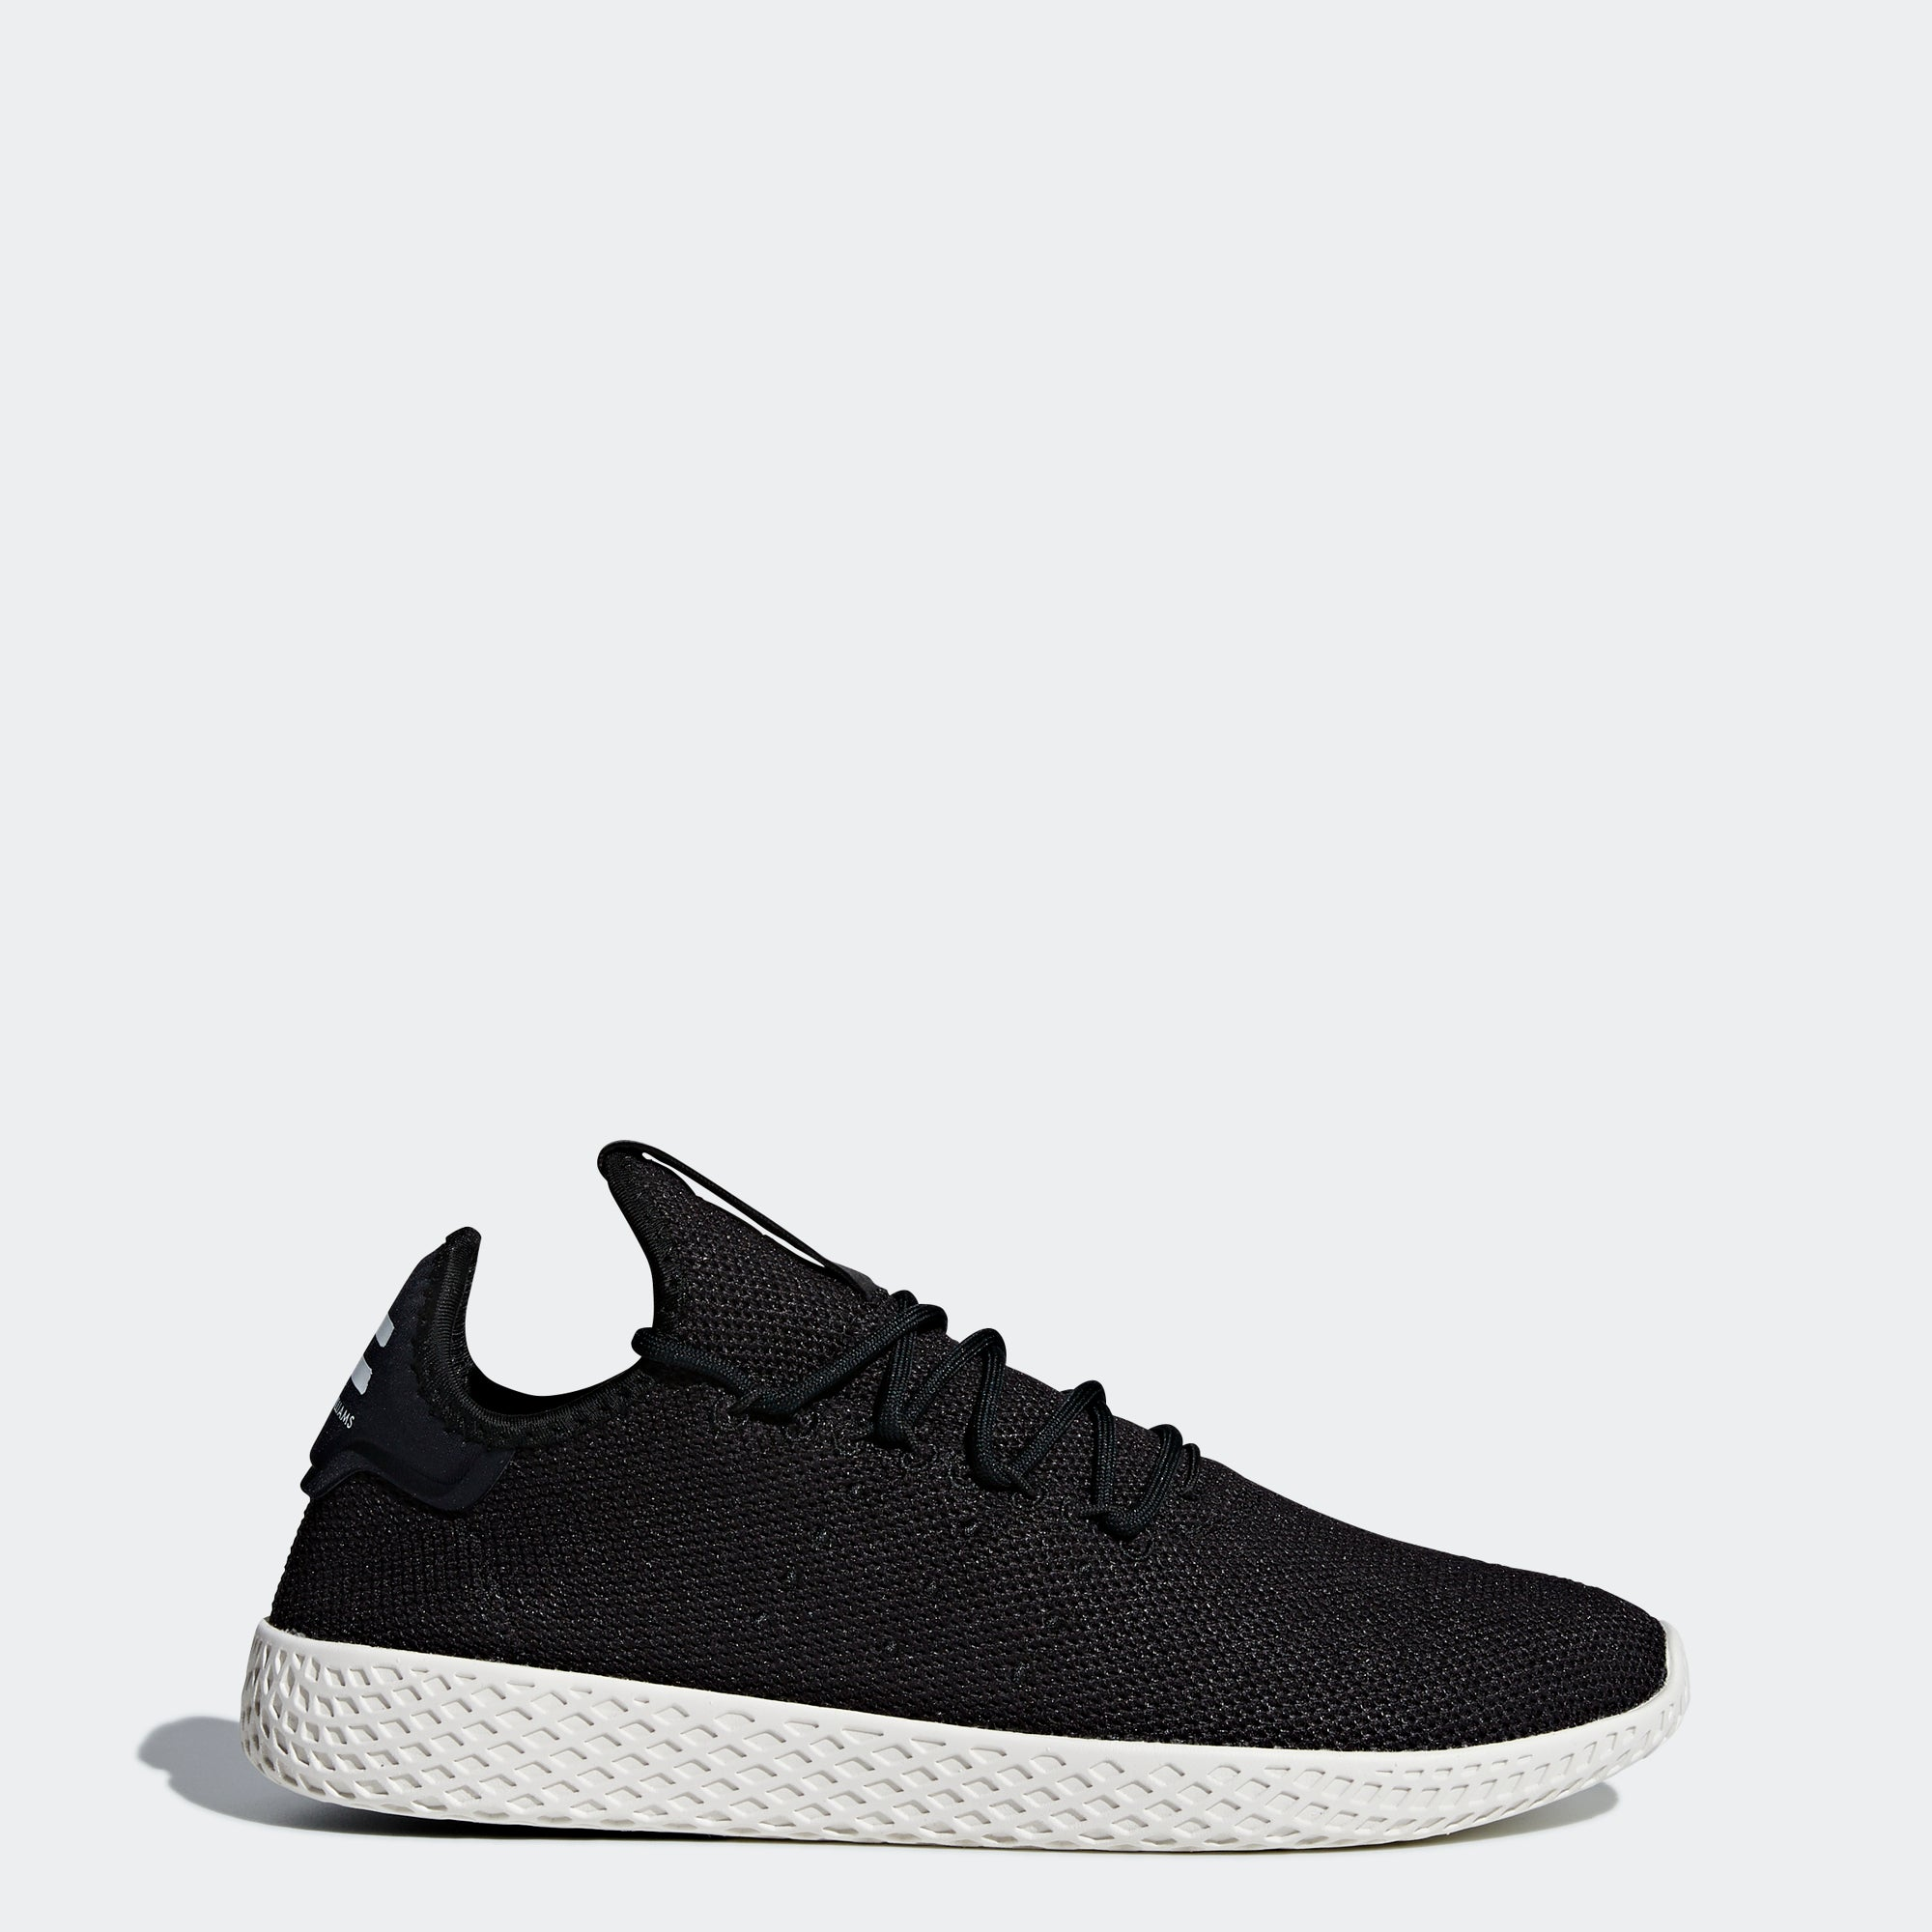 e3717e831 Men s adidas Originals Pharrell Williams Tennis Hu Shoes Black